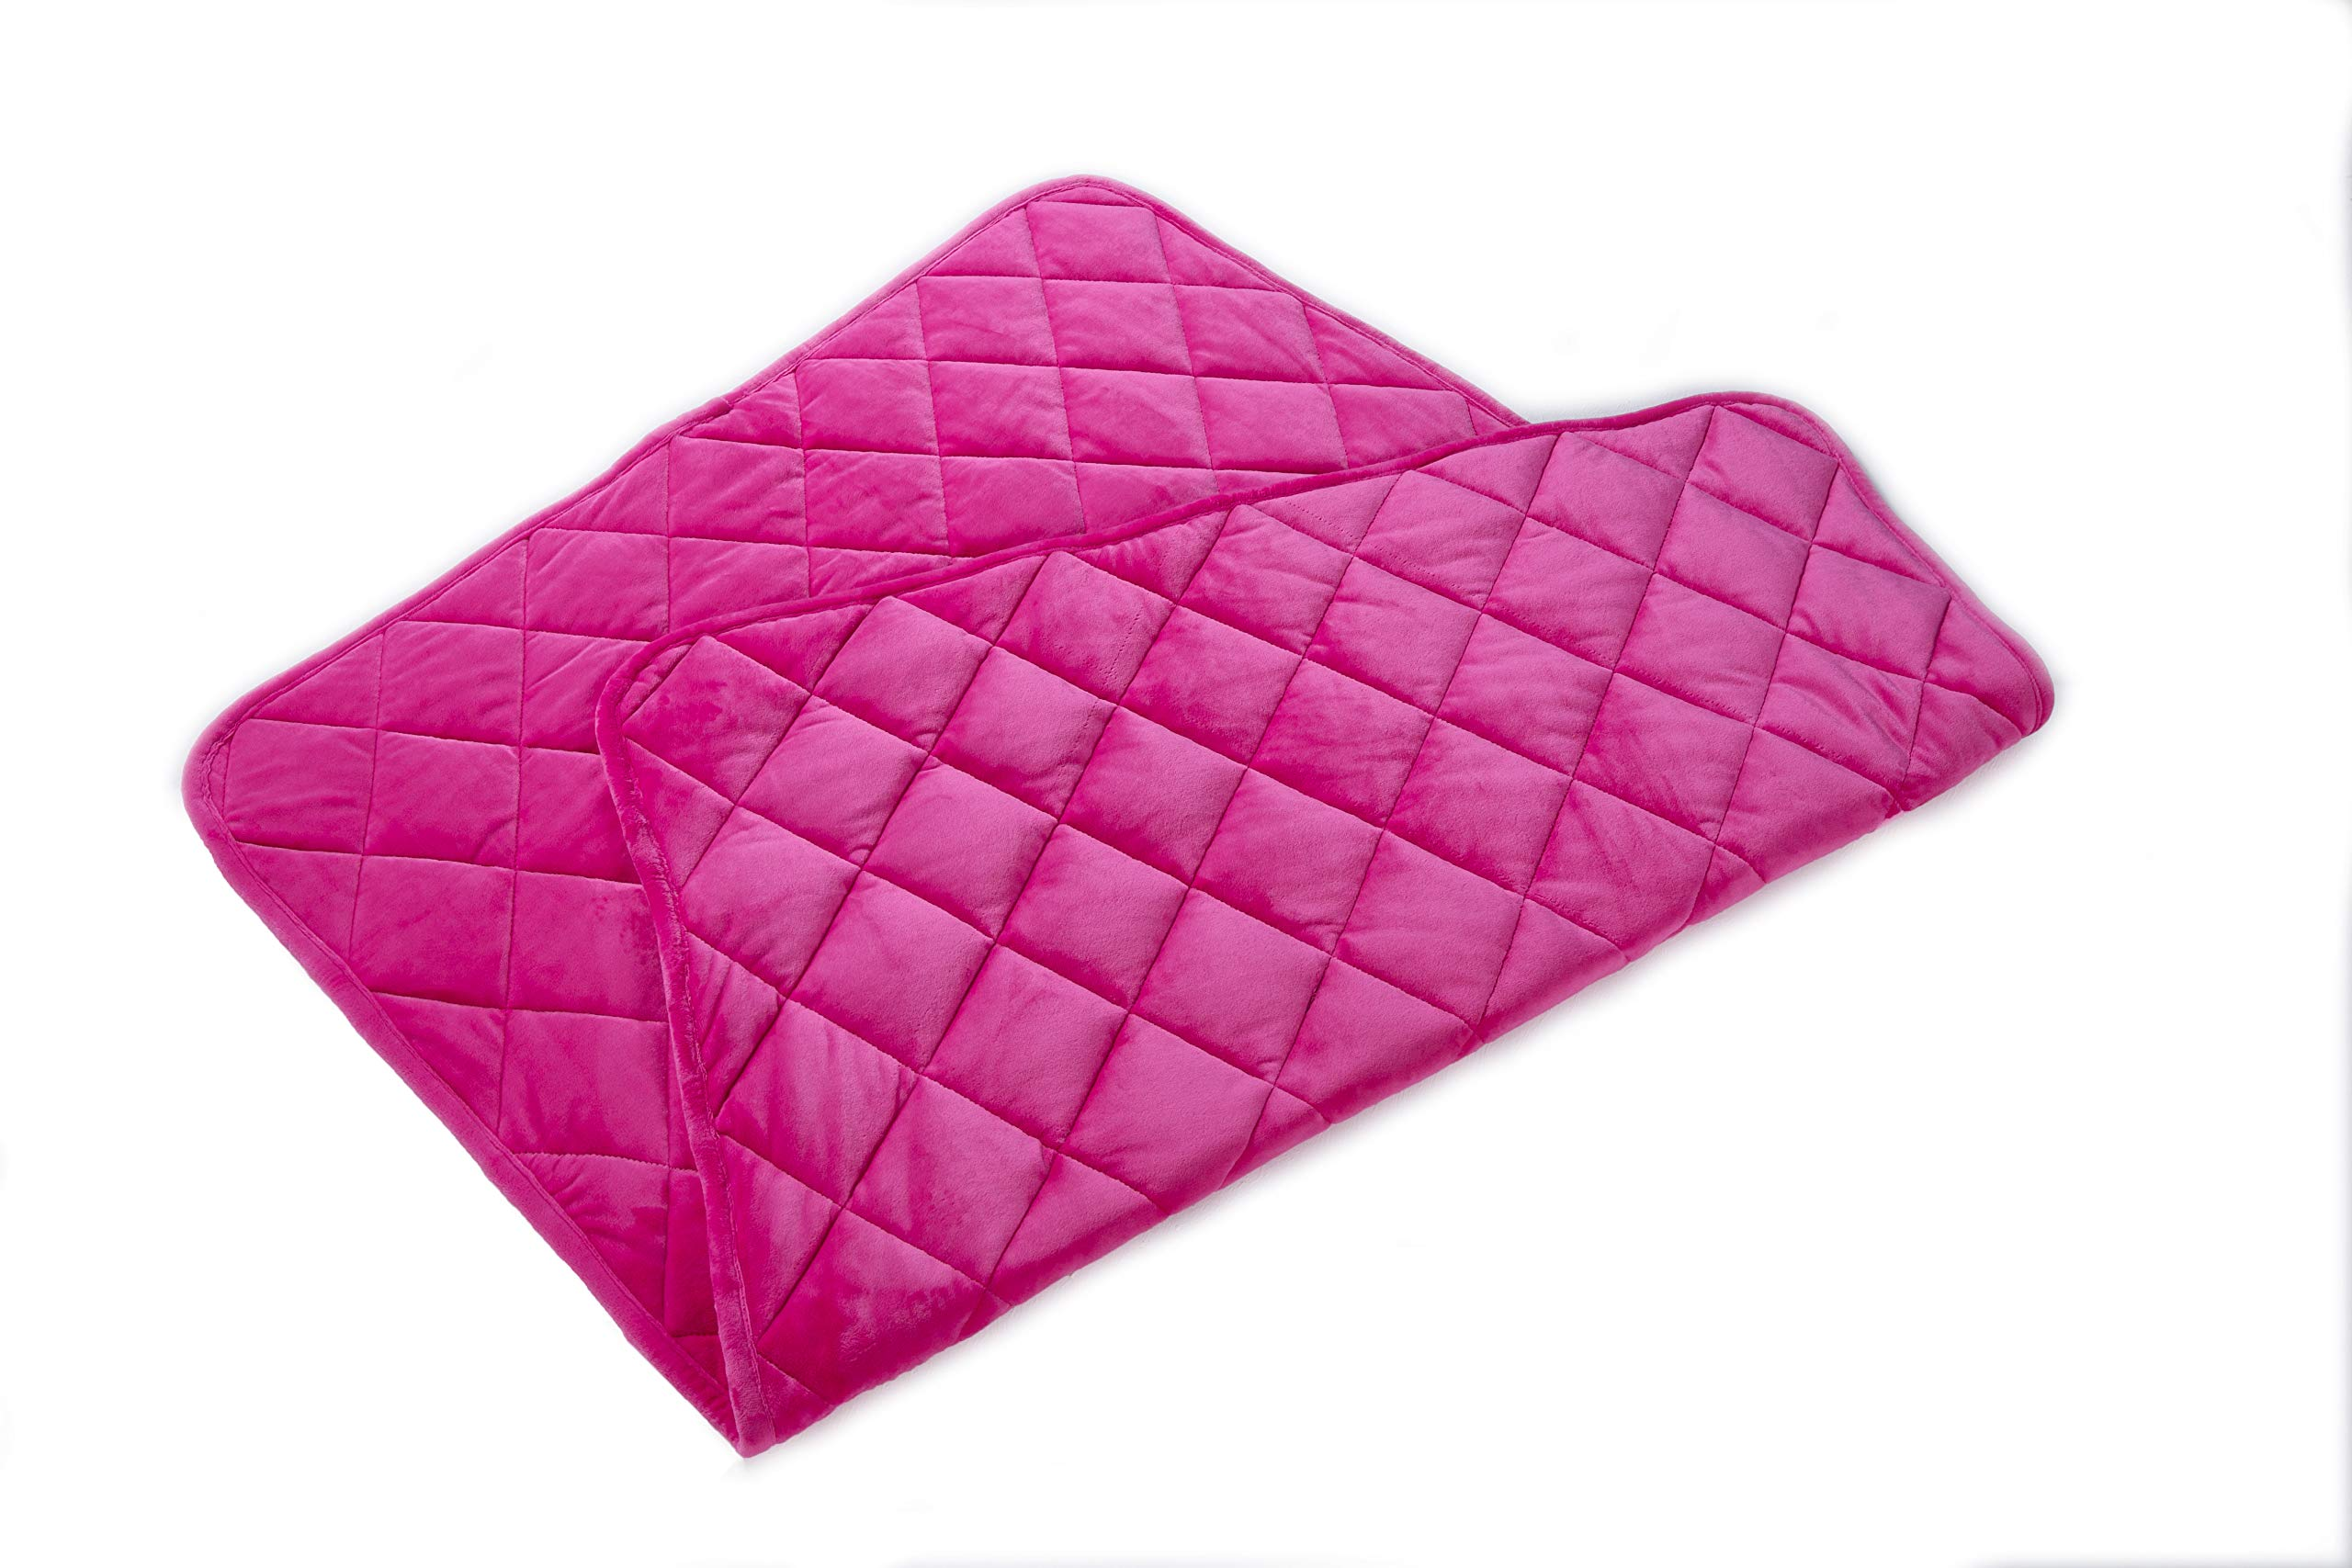 Finslep Minky Weighted Blankets   One Piece Design   Travel Blanket   Air Conditioner Duvet   Kid's&Toddler Blanket   Good for A Better Sleep   Easy Clean   Glass Beads(Pink, 36'' x 48'' 3 lbs) by Finslep